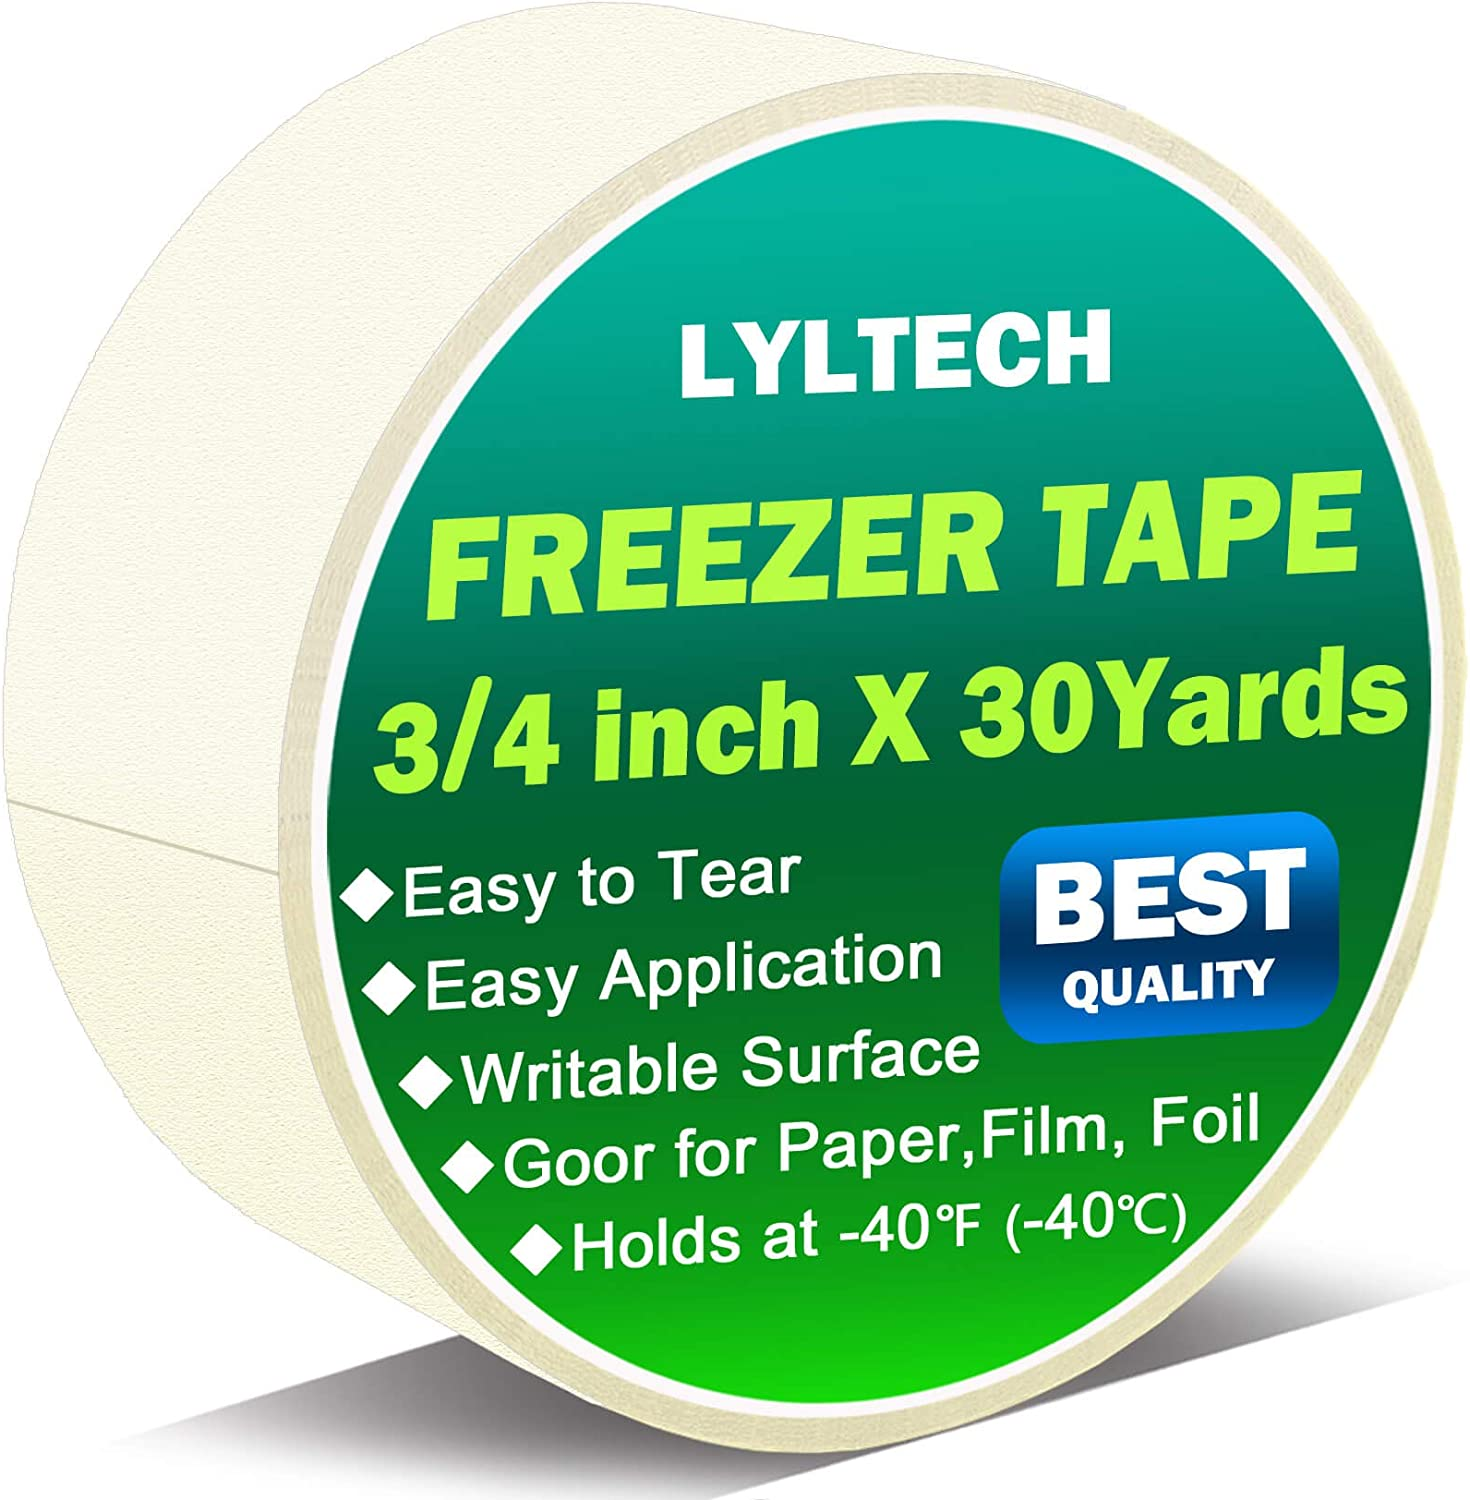 Freezer Tape, 3/4 Inch x 30 Yards, Writable Surface,Easy to Tear, Working Under Low Temperature, Single Roll